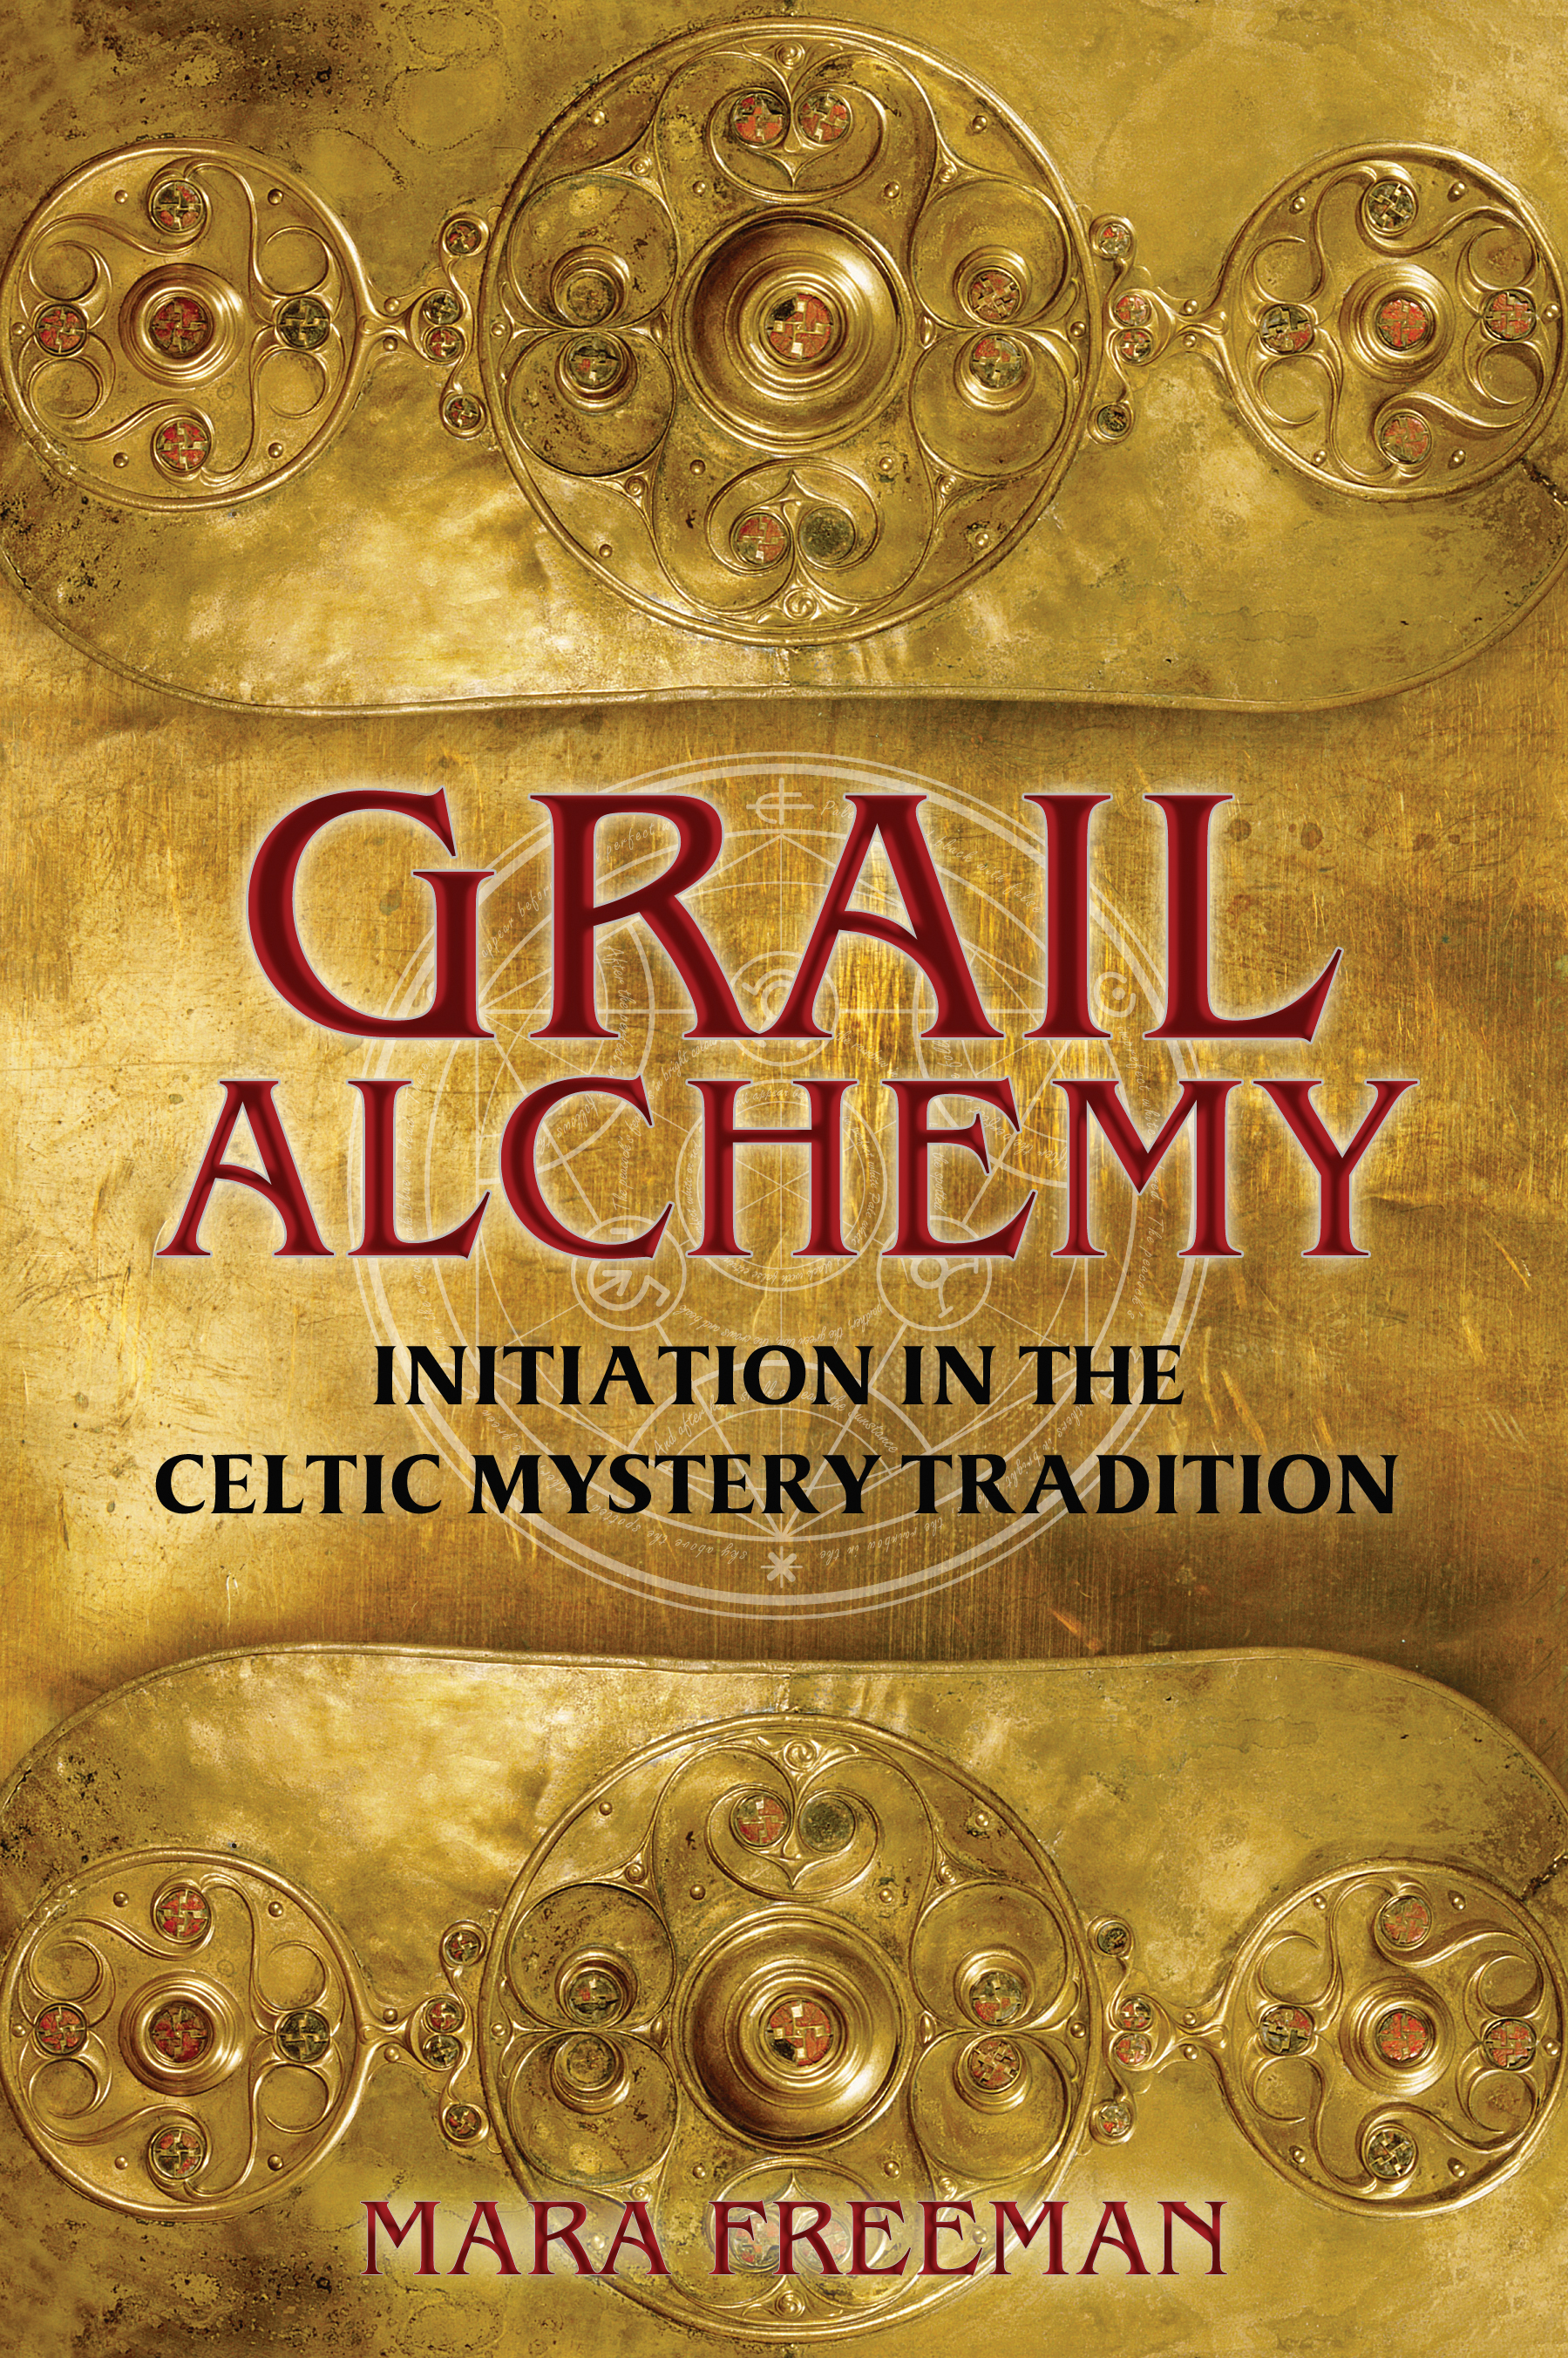 Grail-alchemy-9781620551912_hr